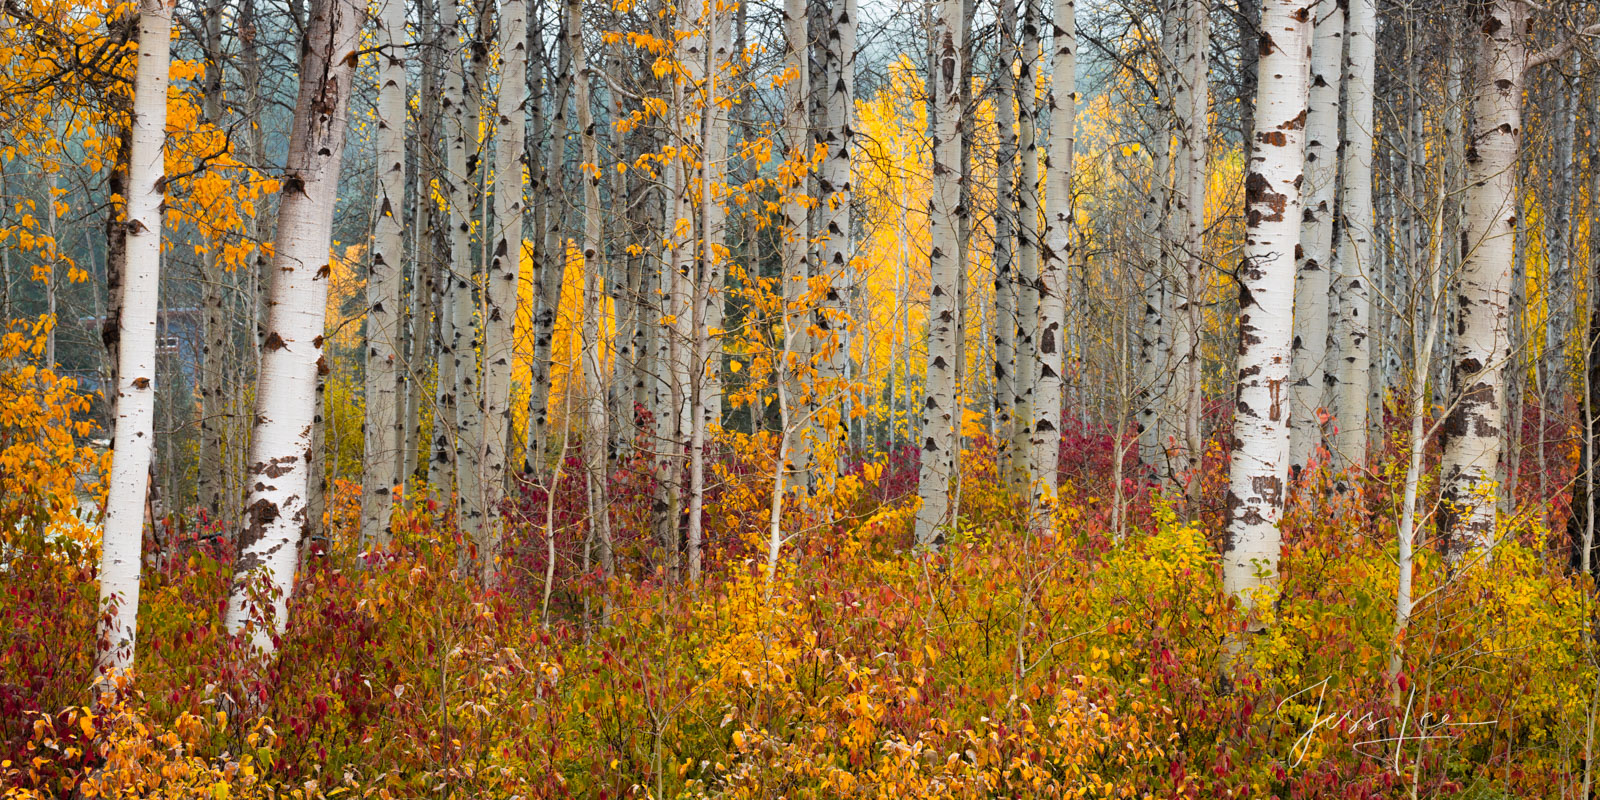 A limited edition fine art photographic print of 50 archival Museum Quality artworks of this beautiful autumn Birch Forest....